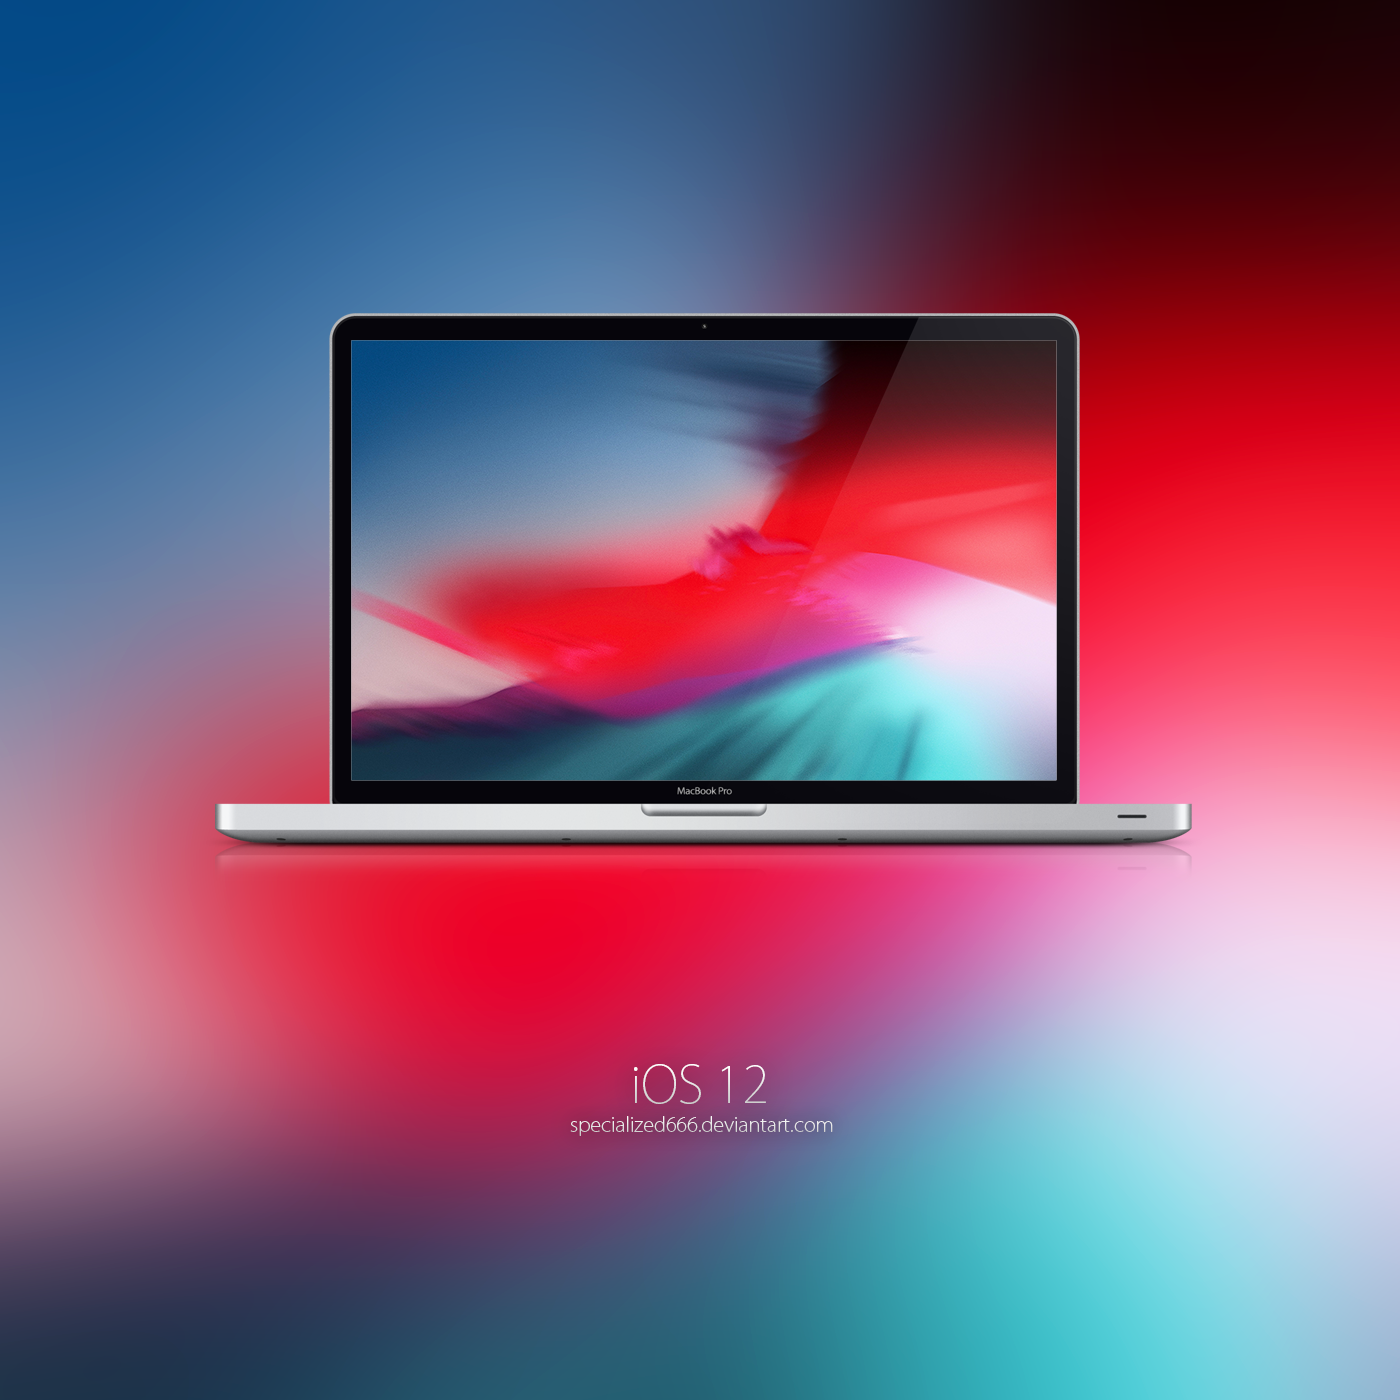 Ios 12 Wallpaper By Specialized666 On Deviantart